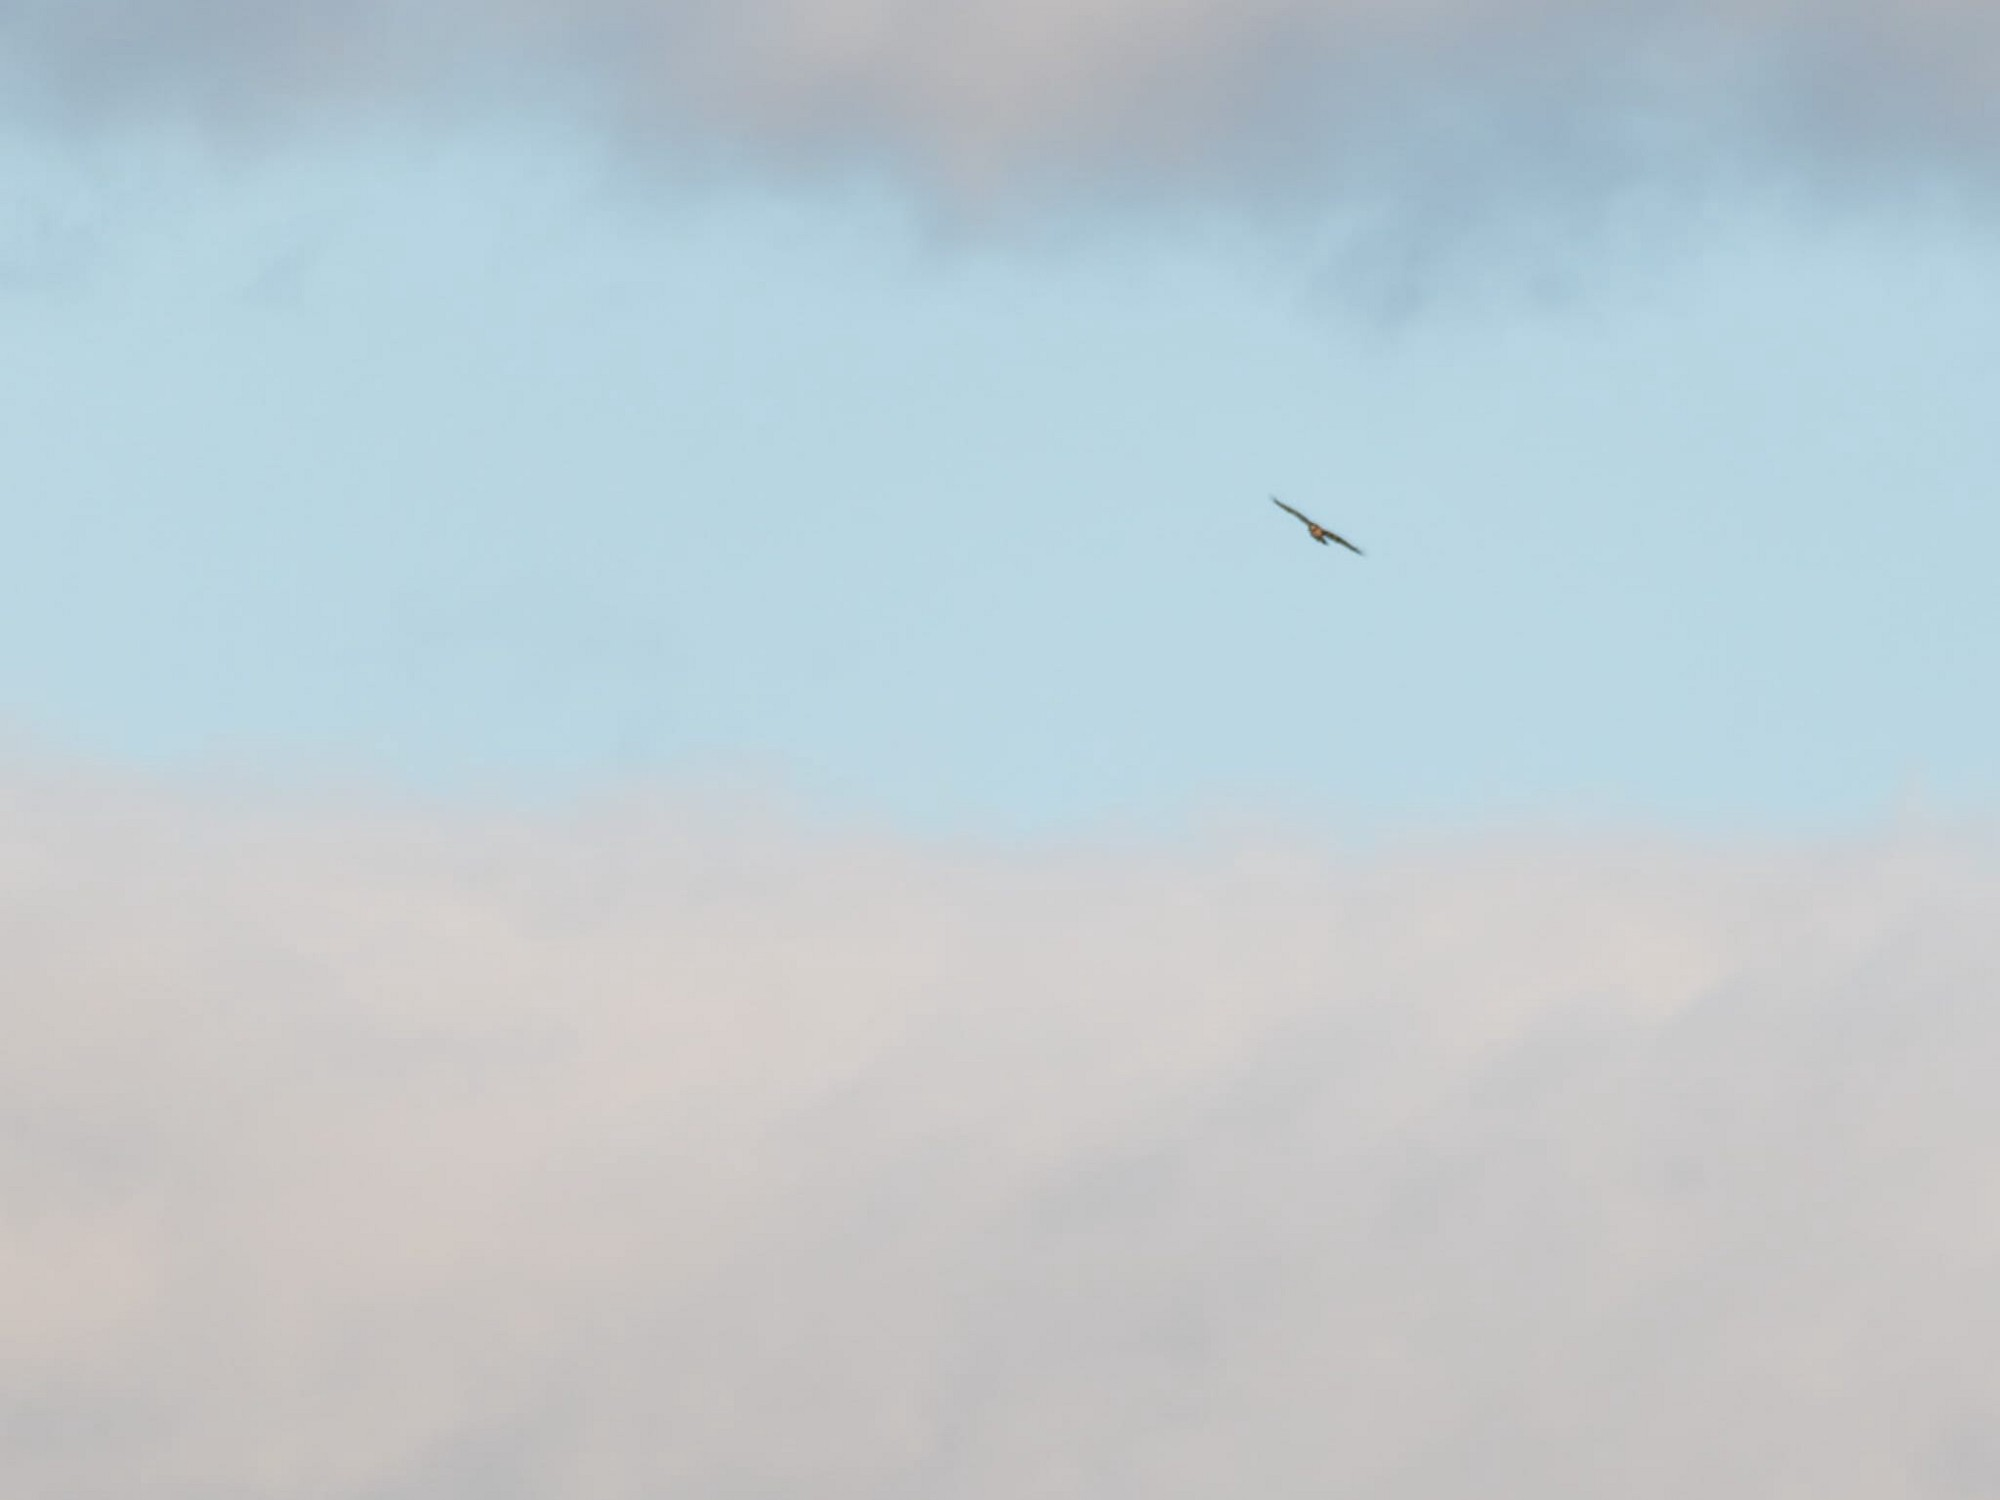 Juvenile bald eagle soaring in a clearing sky.